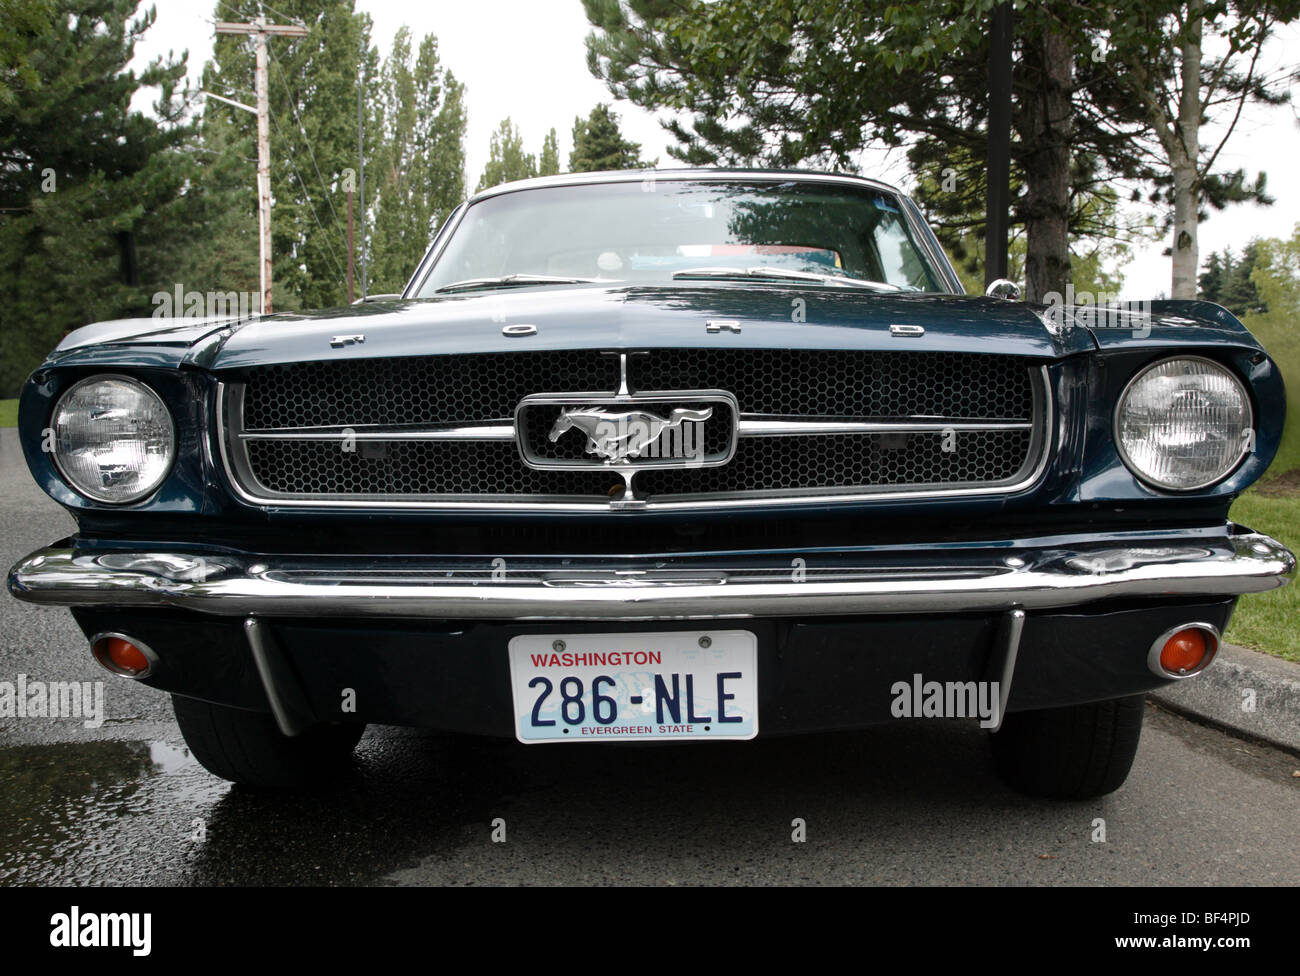 1965 First generation Ford Mustang on show at  the 22nd annual Northwest Muscle Car Show,  Issaquah, Washington, - Stock Image